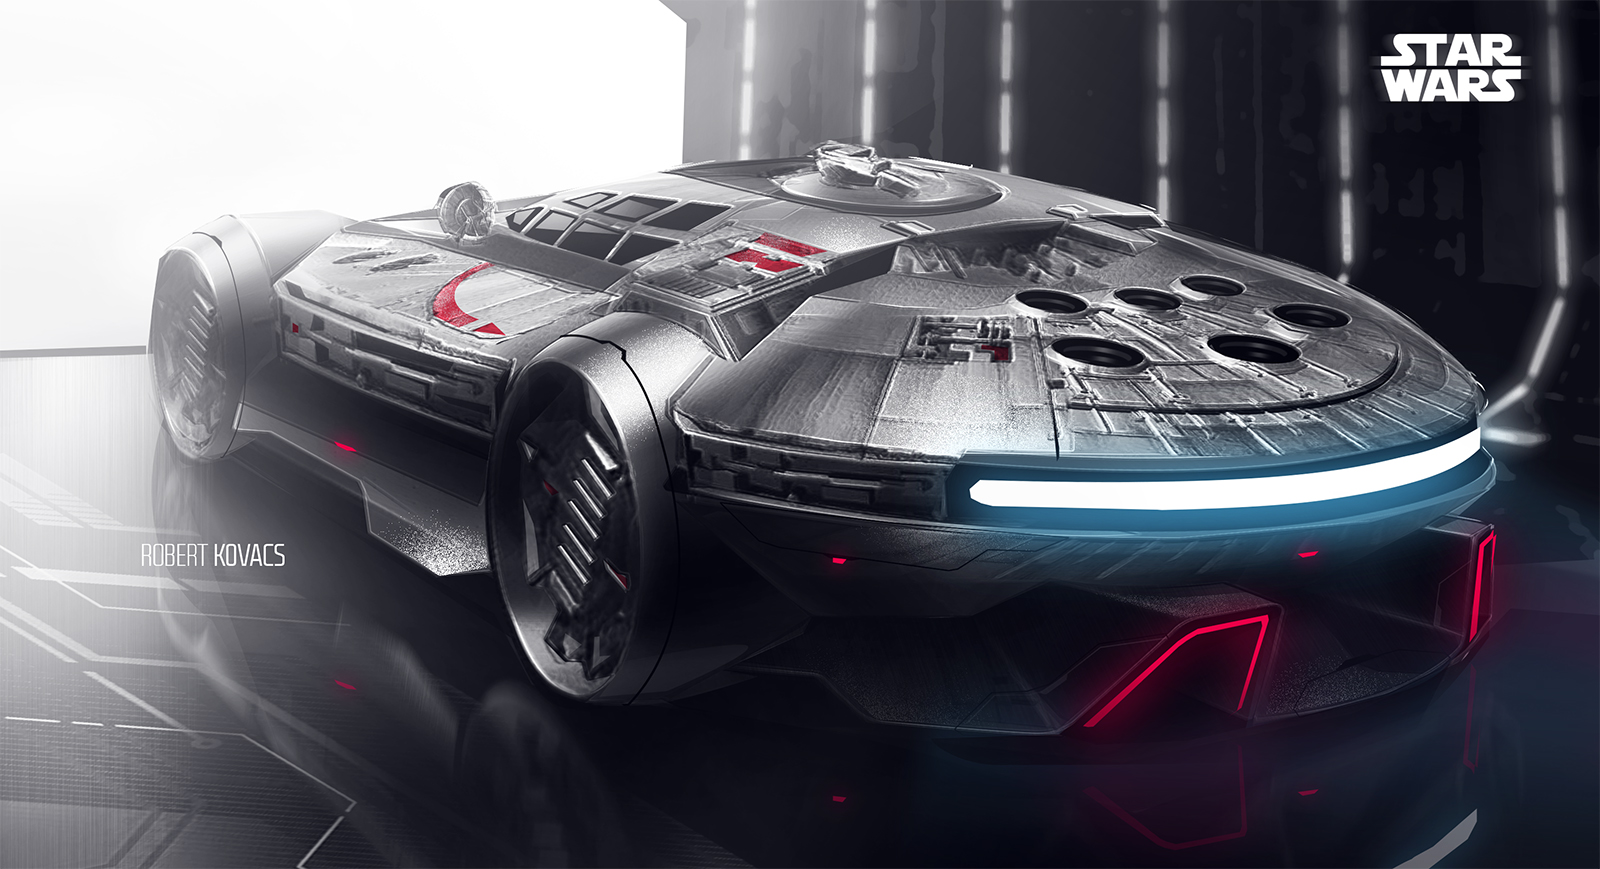 Dodge Chargers become Star Wars Stormtroopers for Uber